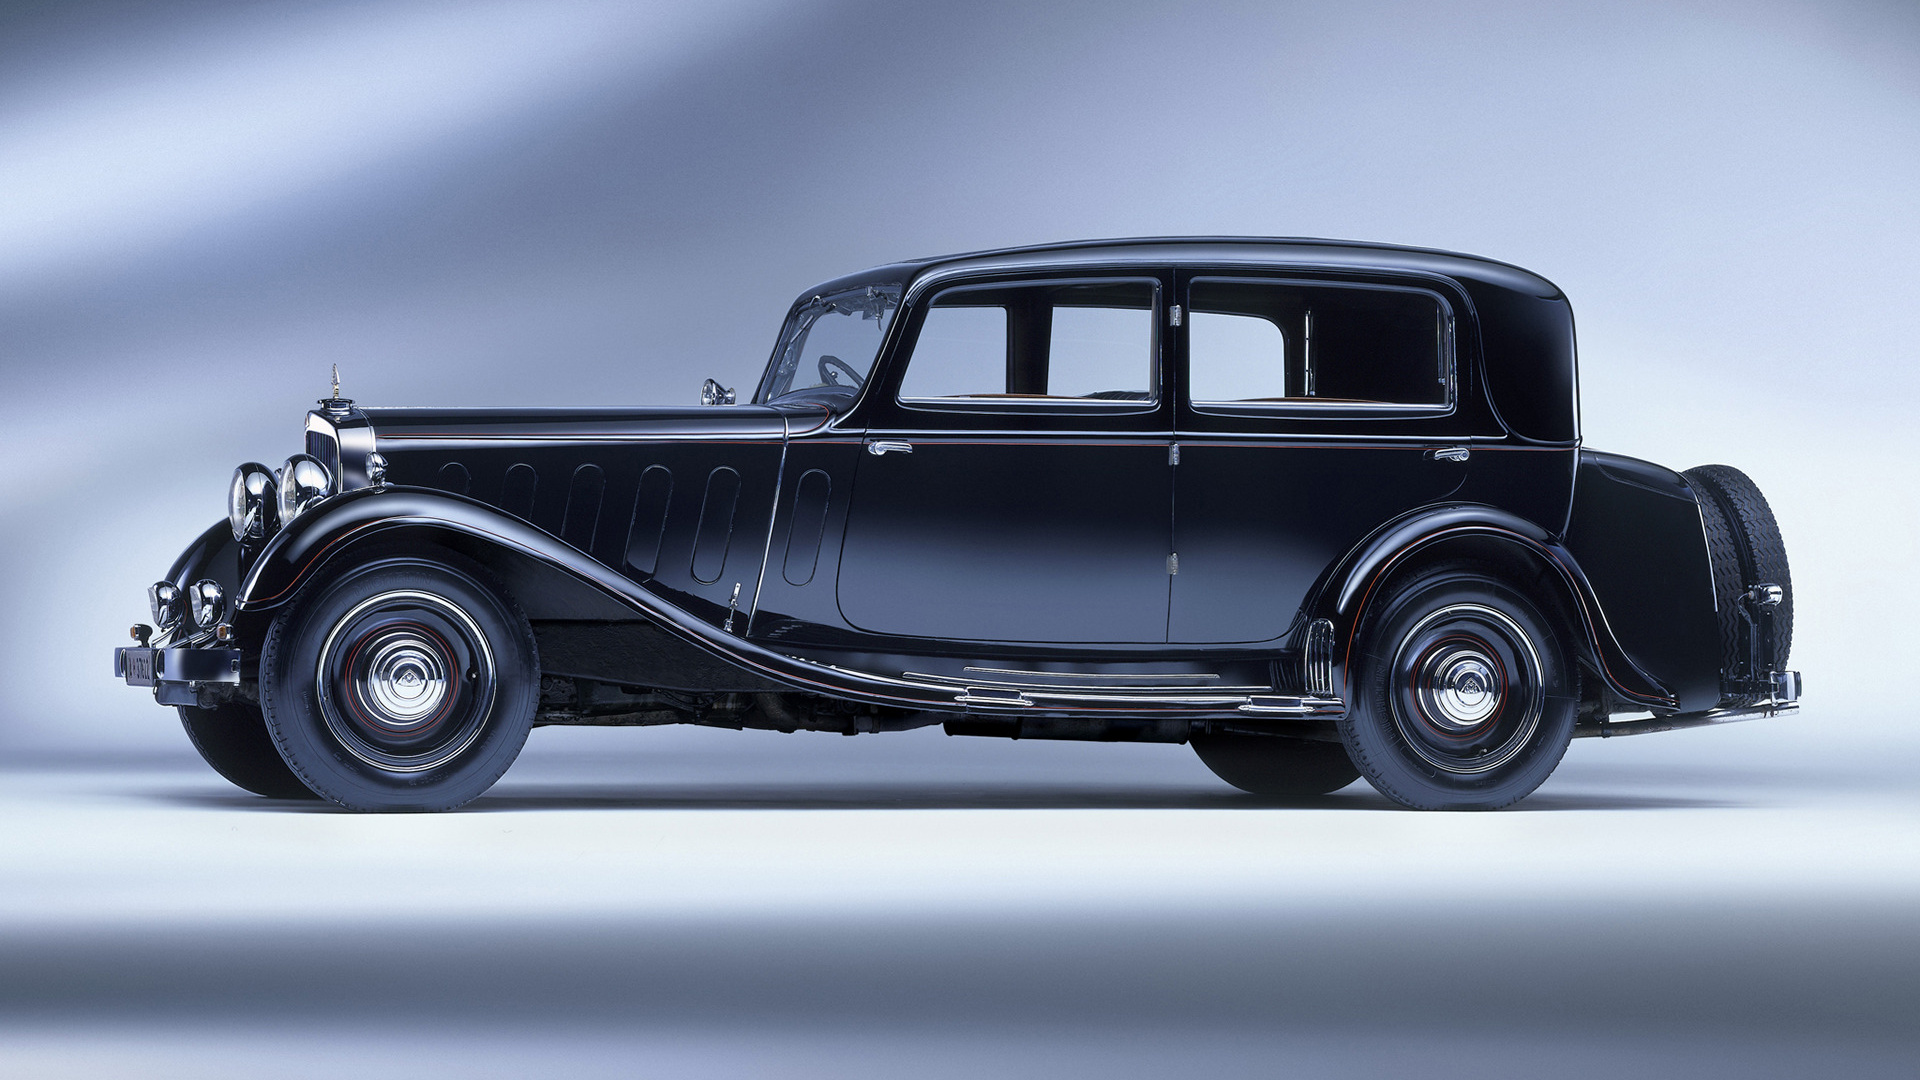 Maybach Zeppelin Ds7 Luxury Limousine 1928 Wallpapers